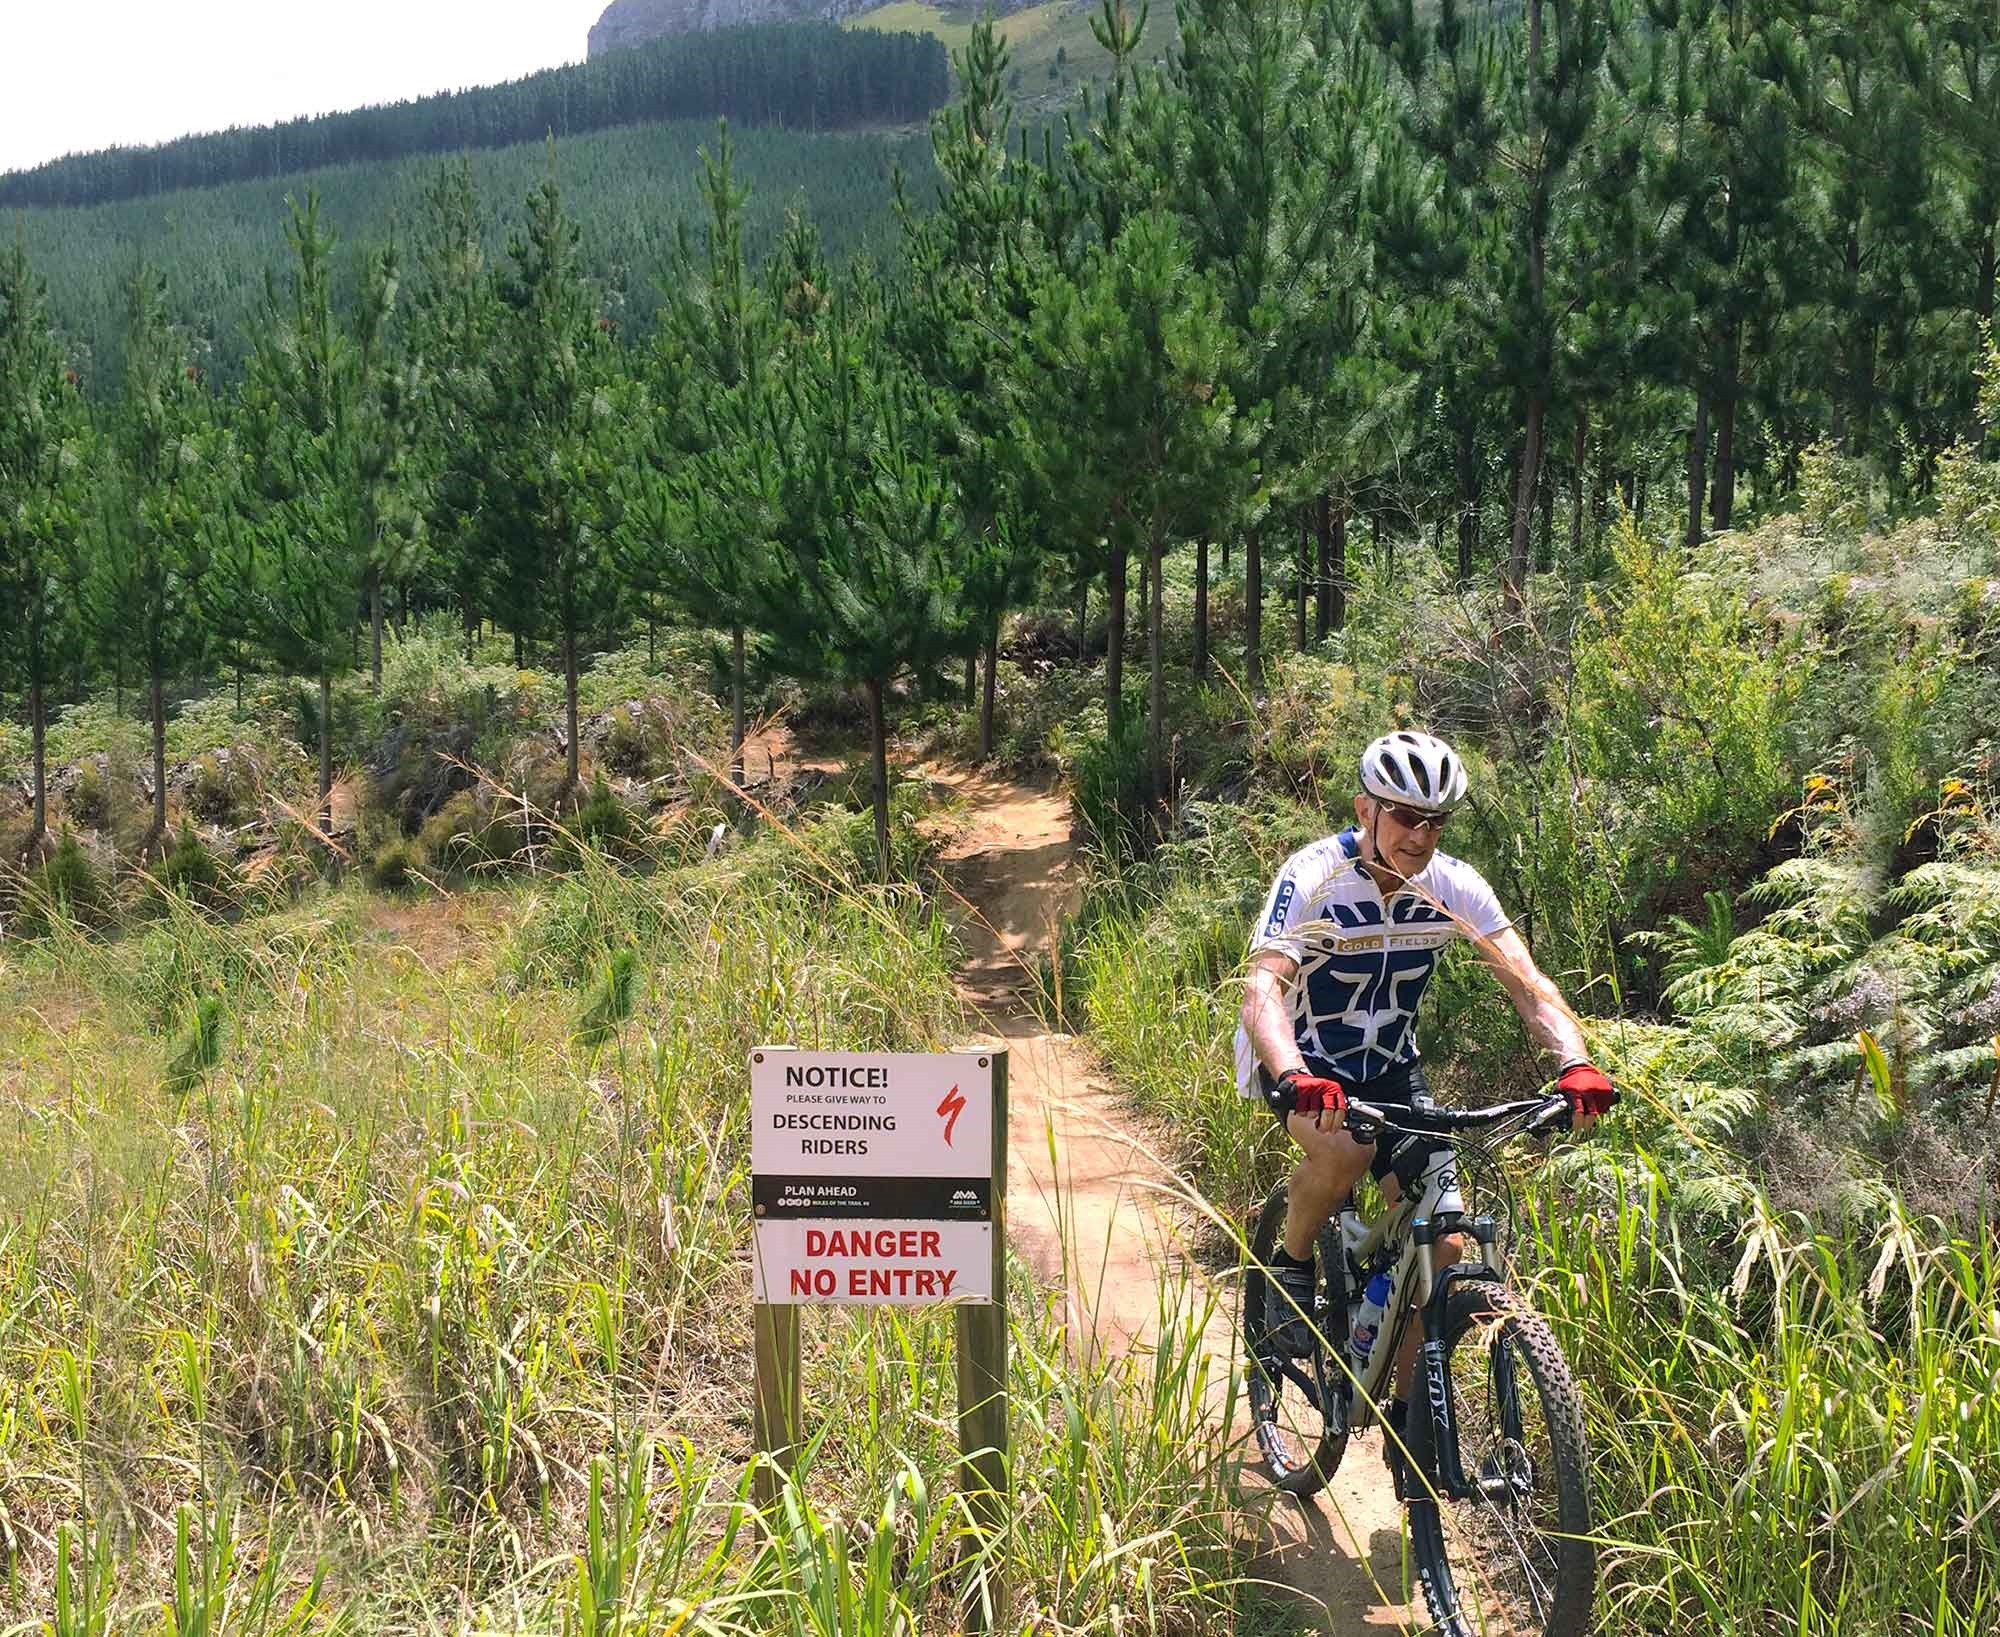 Dad Test Riding the Kona Satori on the South African Trails